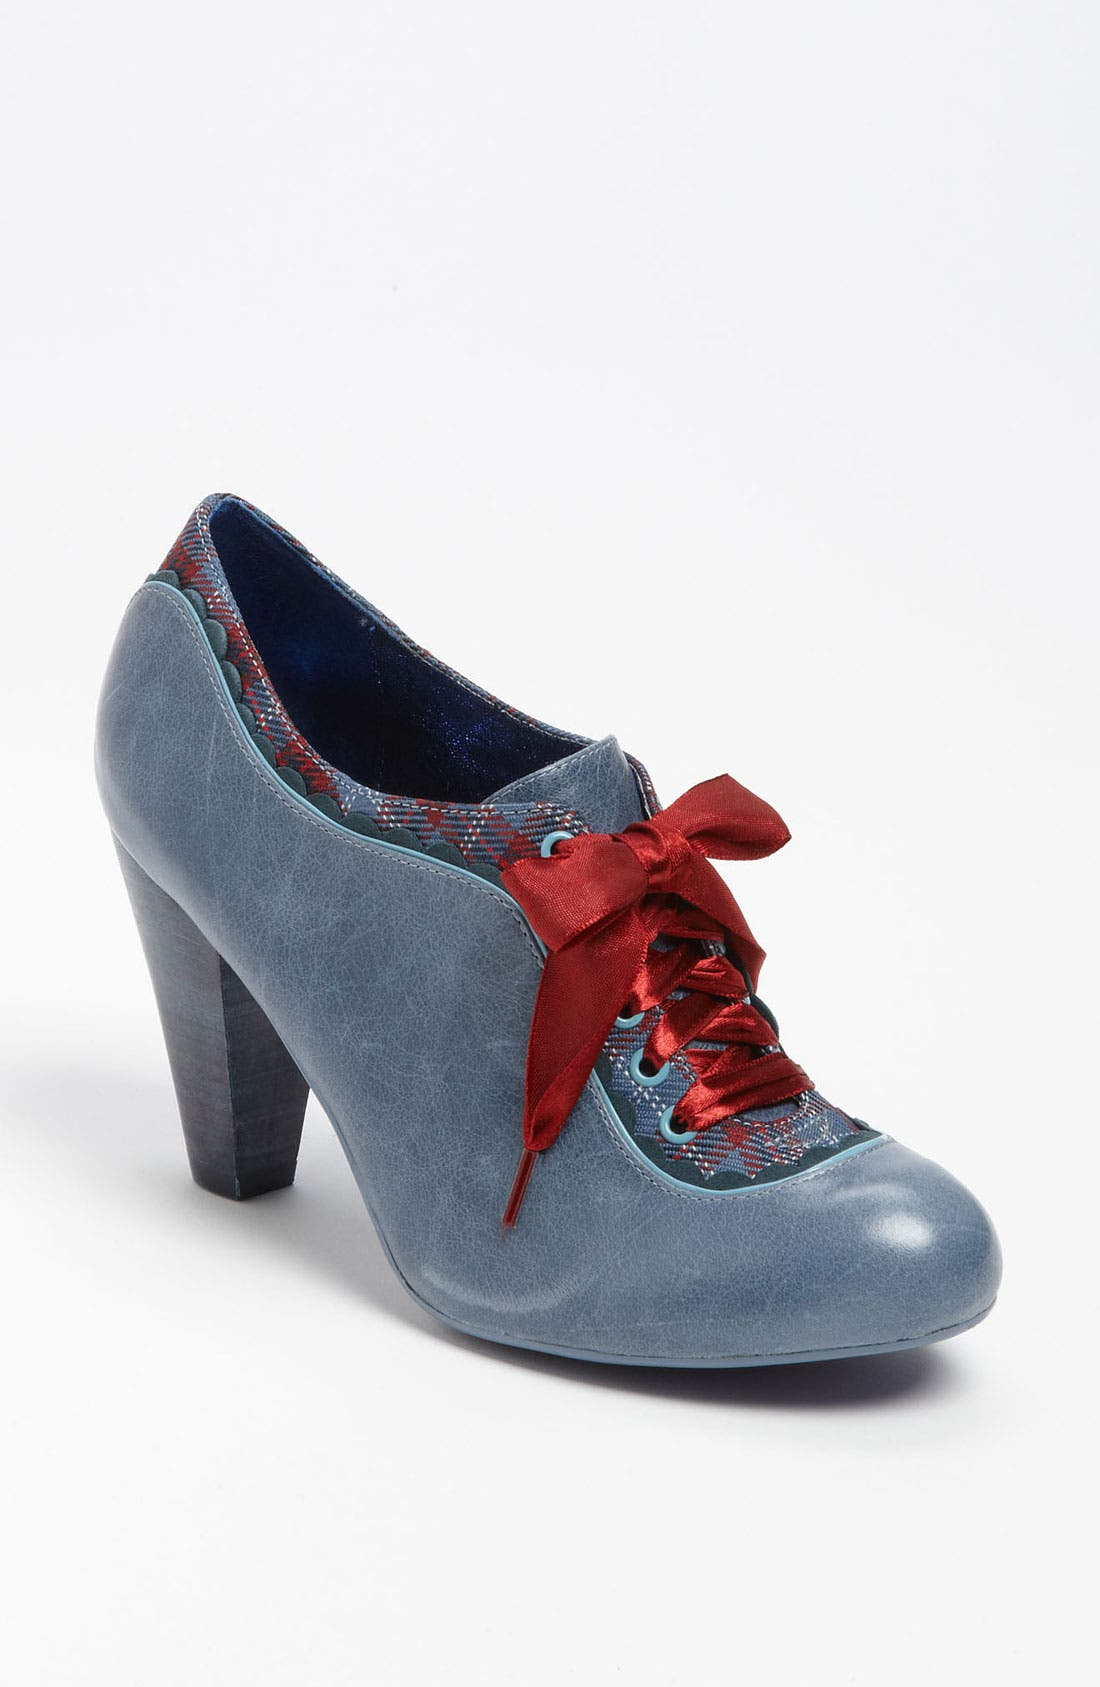 Main Image - Poetic Licence 'Backlash' Oxford Pump